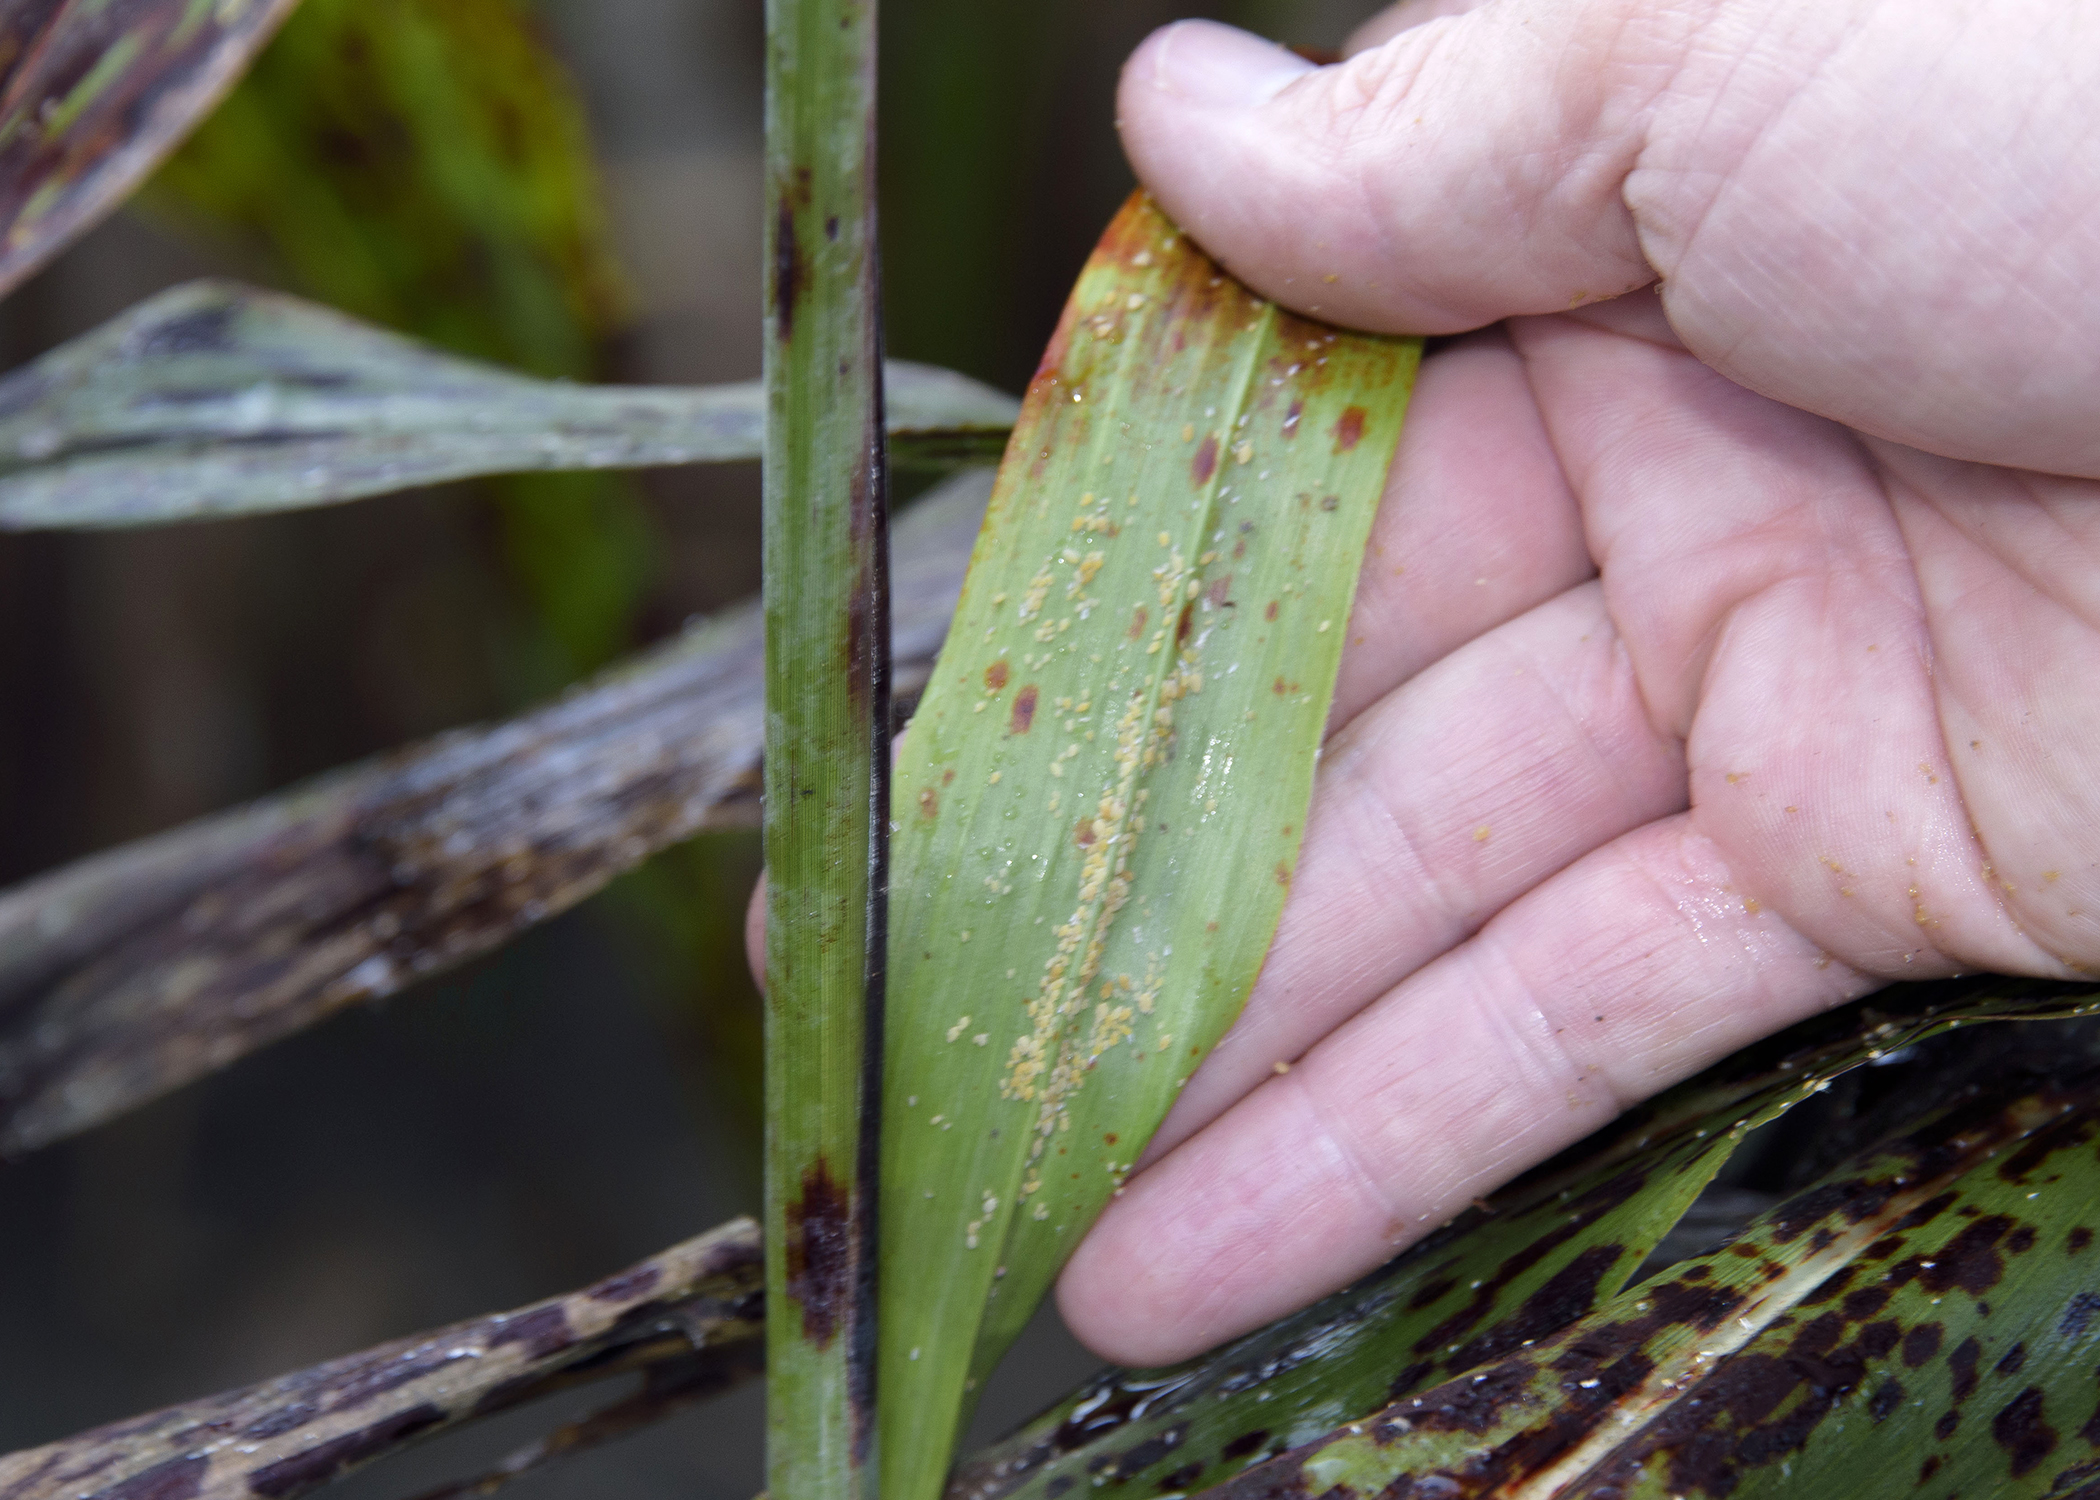 Sugarcane aphids can be seen as dozens of yellowish dots on the surface of this grain sorghum leaf on Sept. 15, 2016, on a Mississippi State University research field in Starkville. Aphids secrete a sticky substance known as honeydew after drawing nutrients from host plants. (Photo by MSU Extension Service/Kevin Hudson)